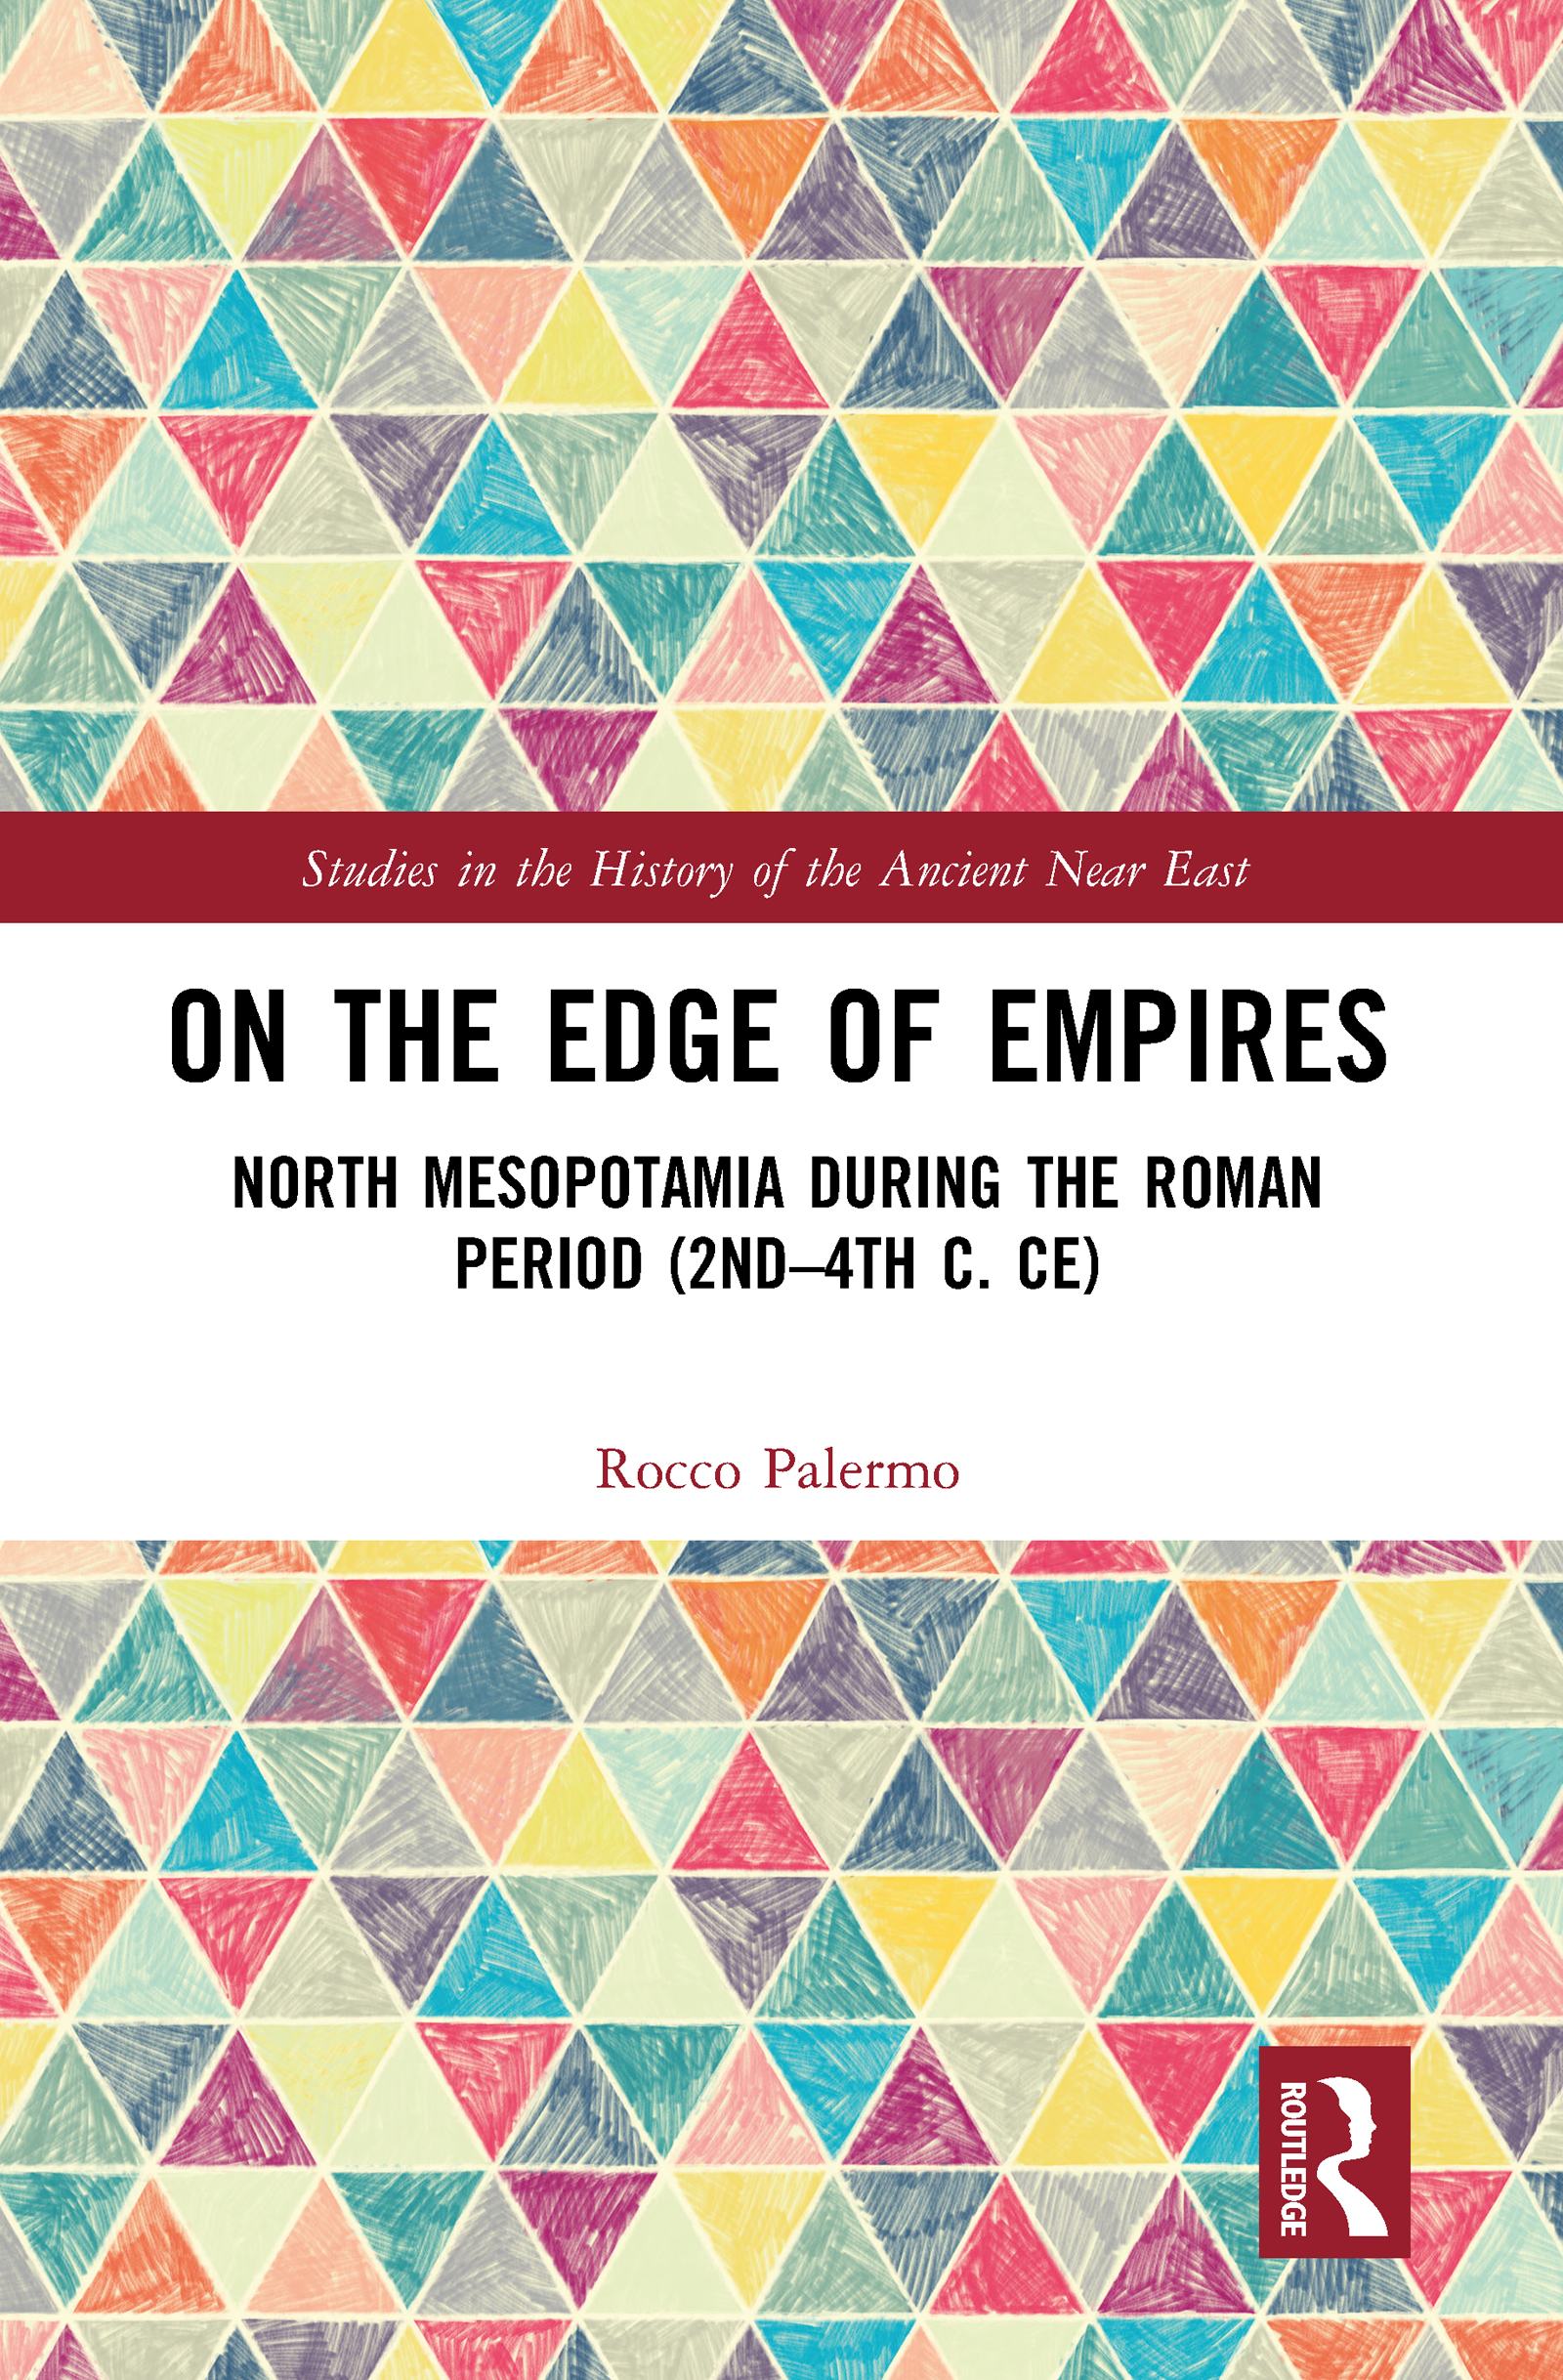 On the Edge of Empires